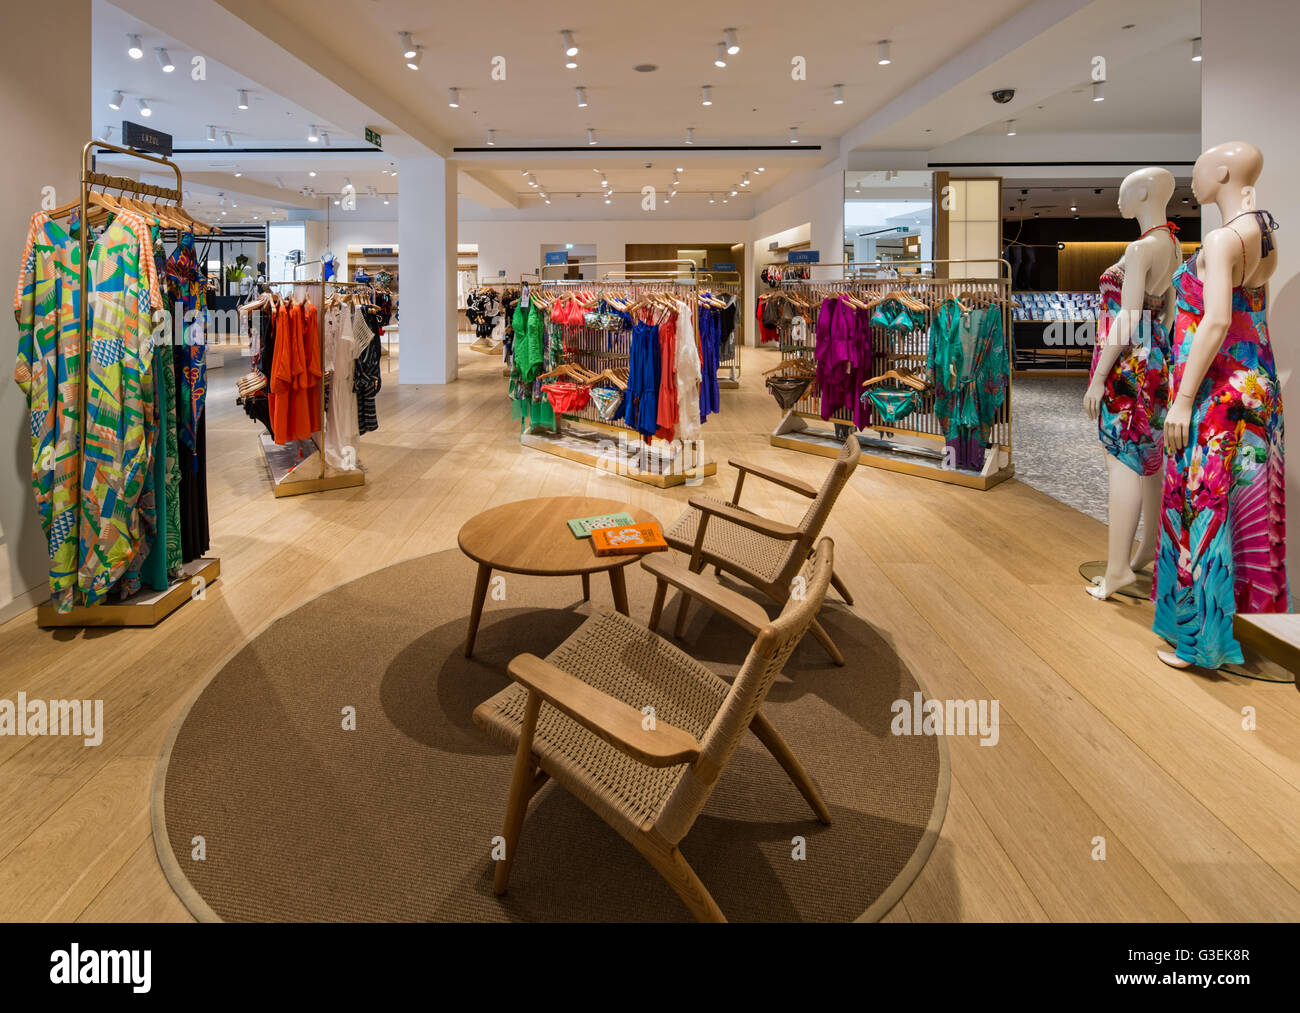 Clothing Store Interior Design High Resolution Stock Photography And Images Alamy